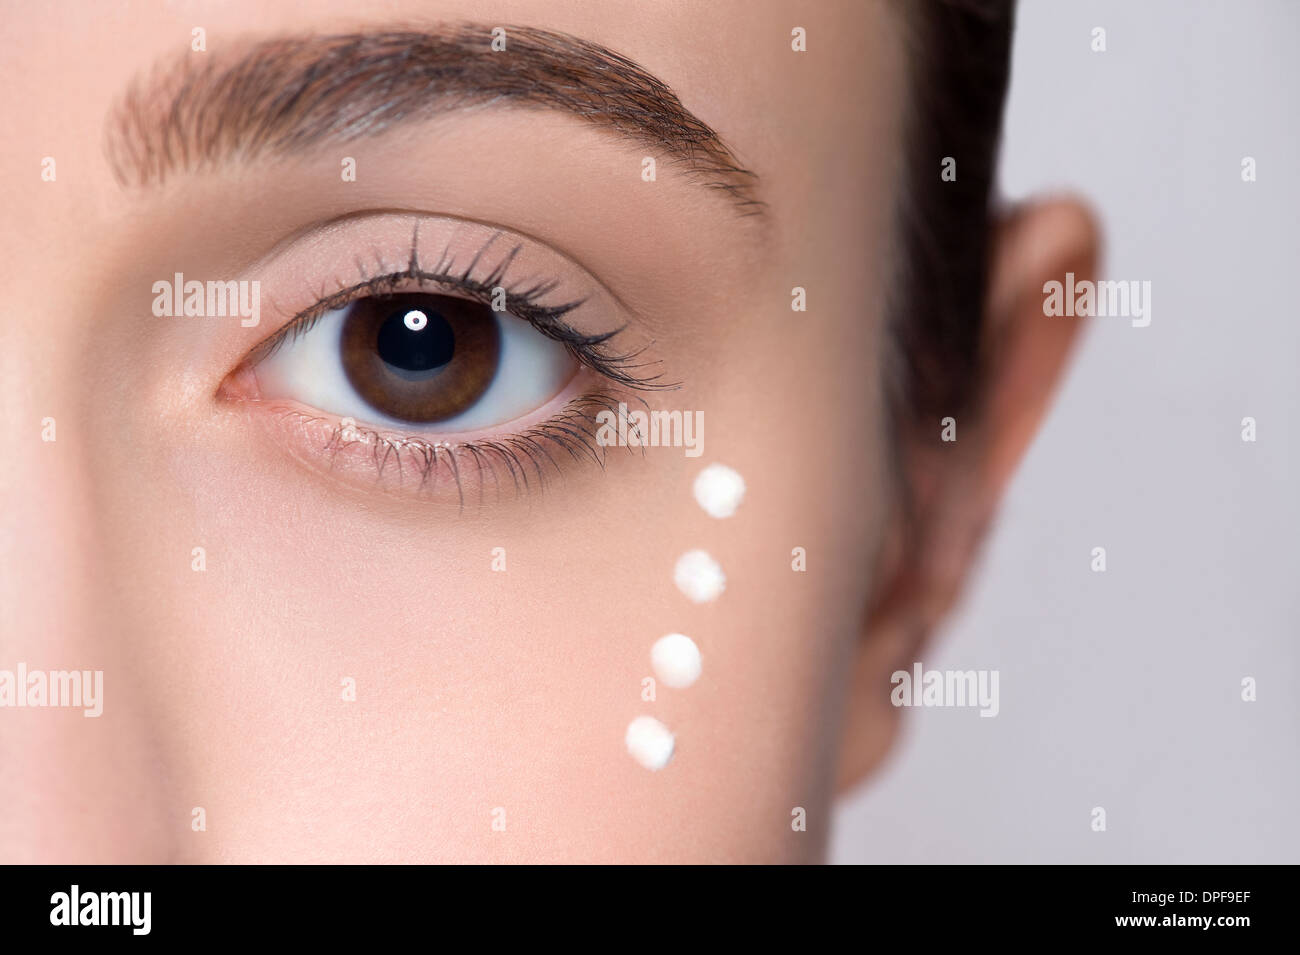 Portrait studio shot of young woman's eye Photo Stock